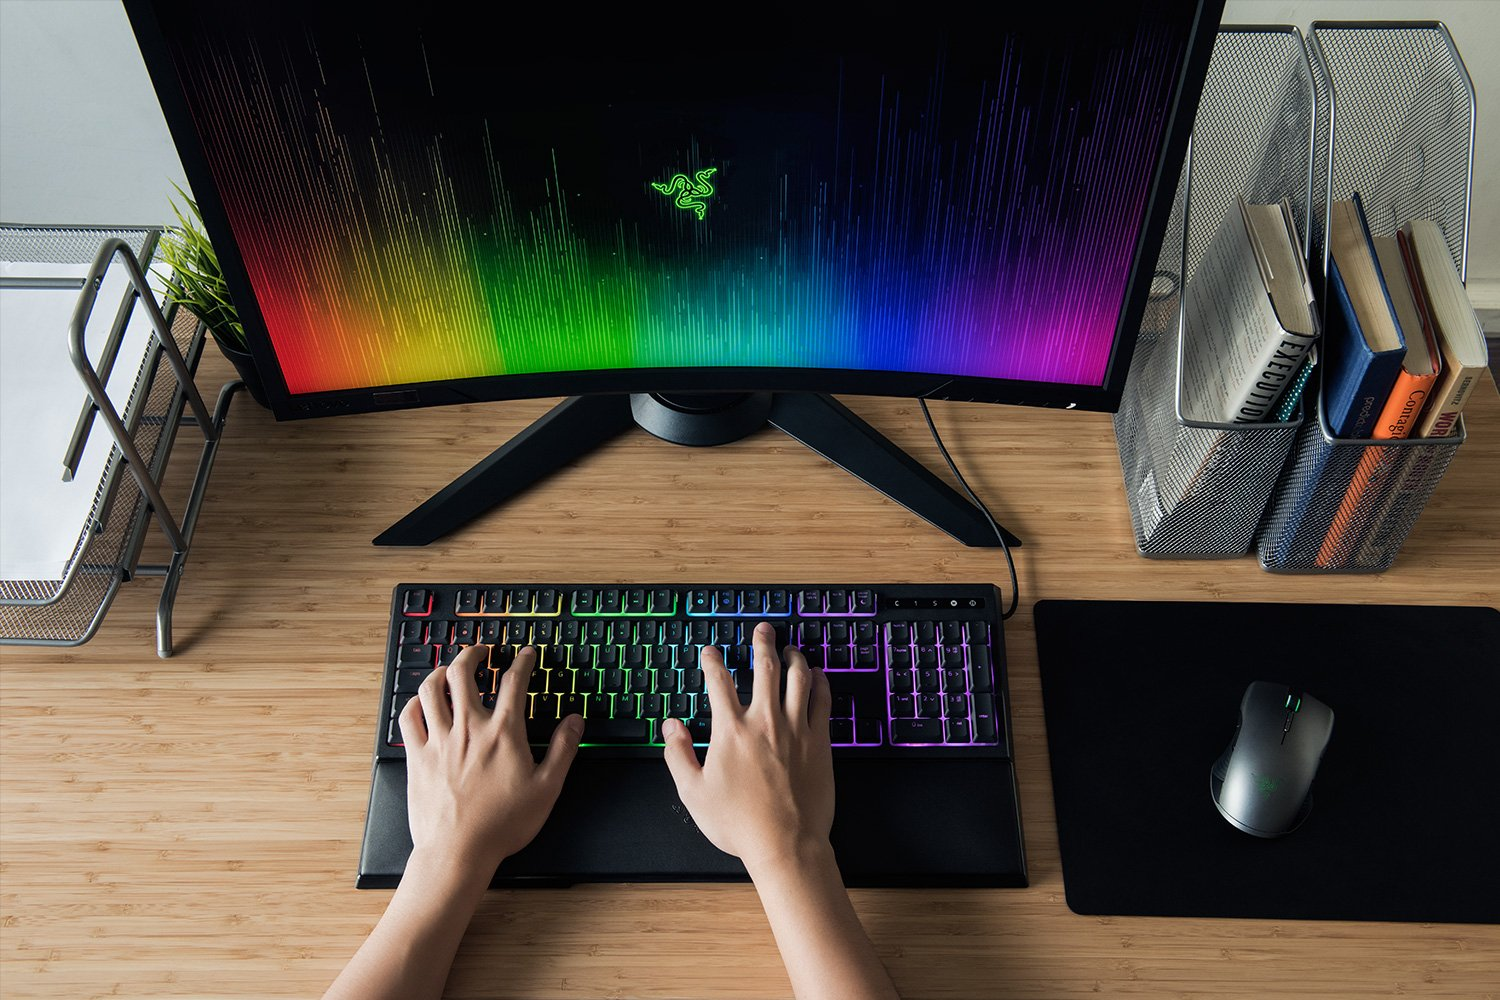 RAZER CHROMA™ CUSTOMIZABLE LIGHTING WITH FULL 16.8 MILLION CUSTOMIZABLE COLOR OPTIONS